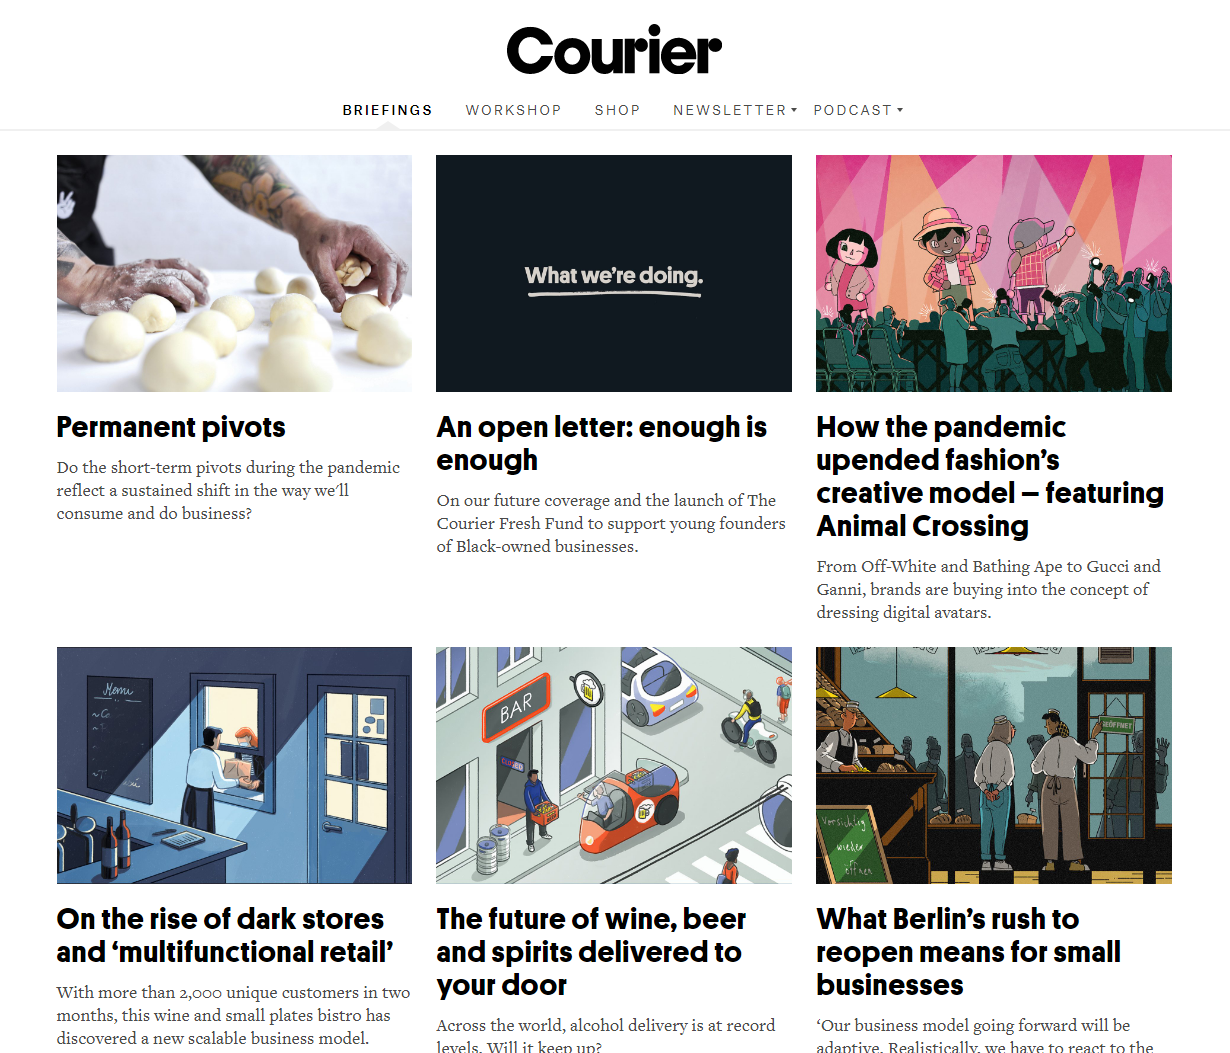 Courier Briefings webpage